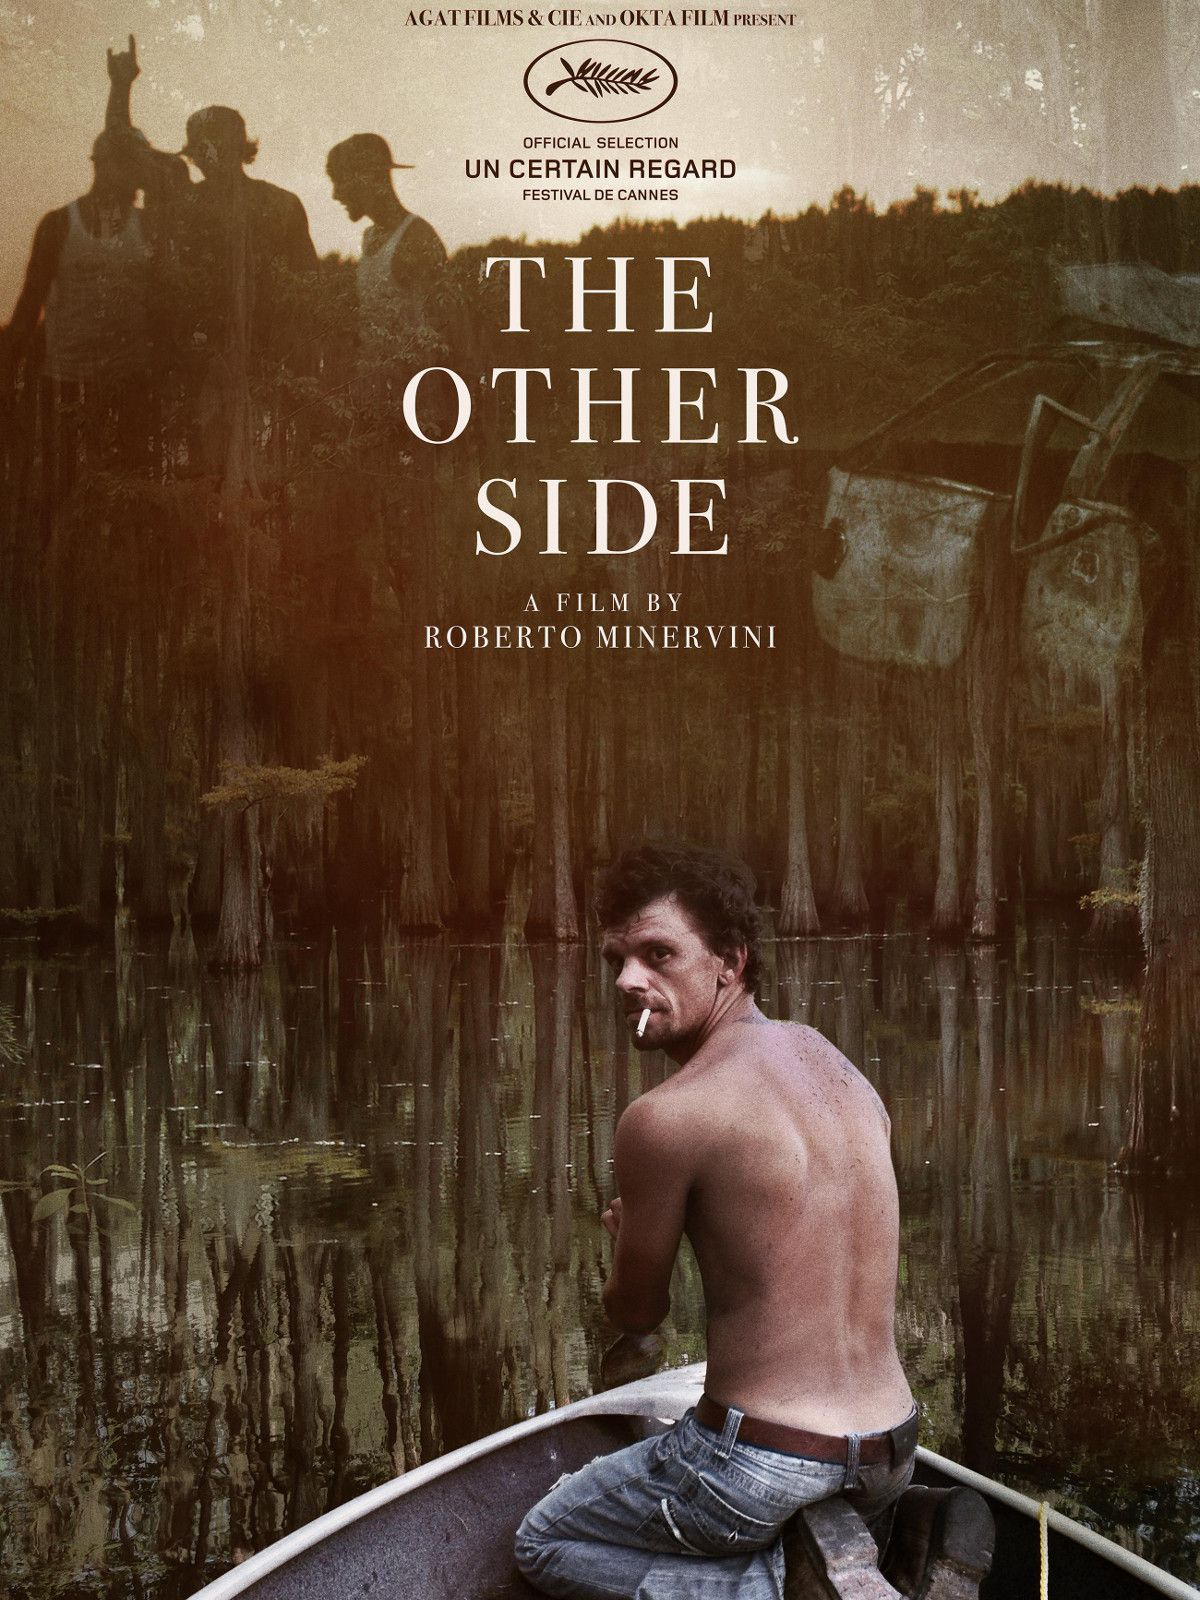 The Other Side - Documentaire (2015) streaming VF gratuit complet